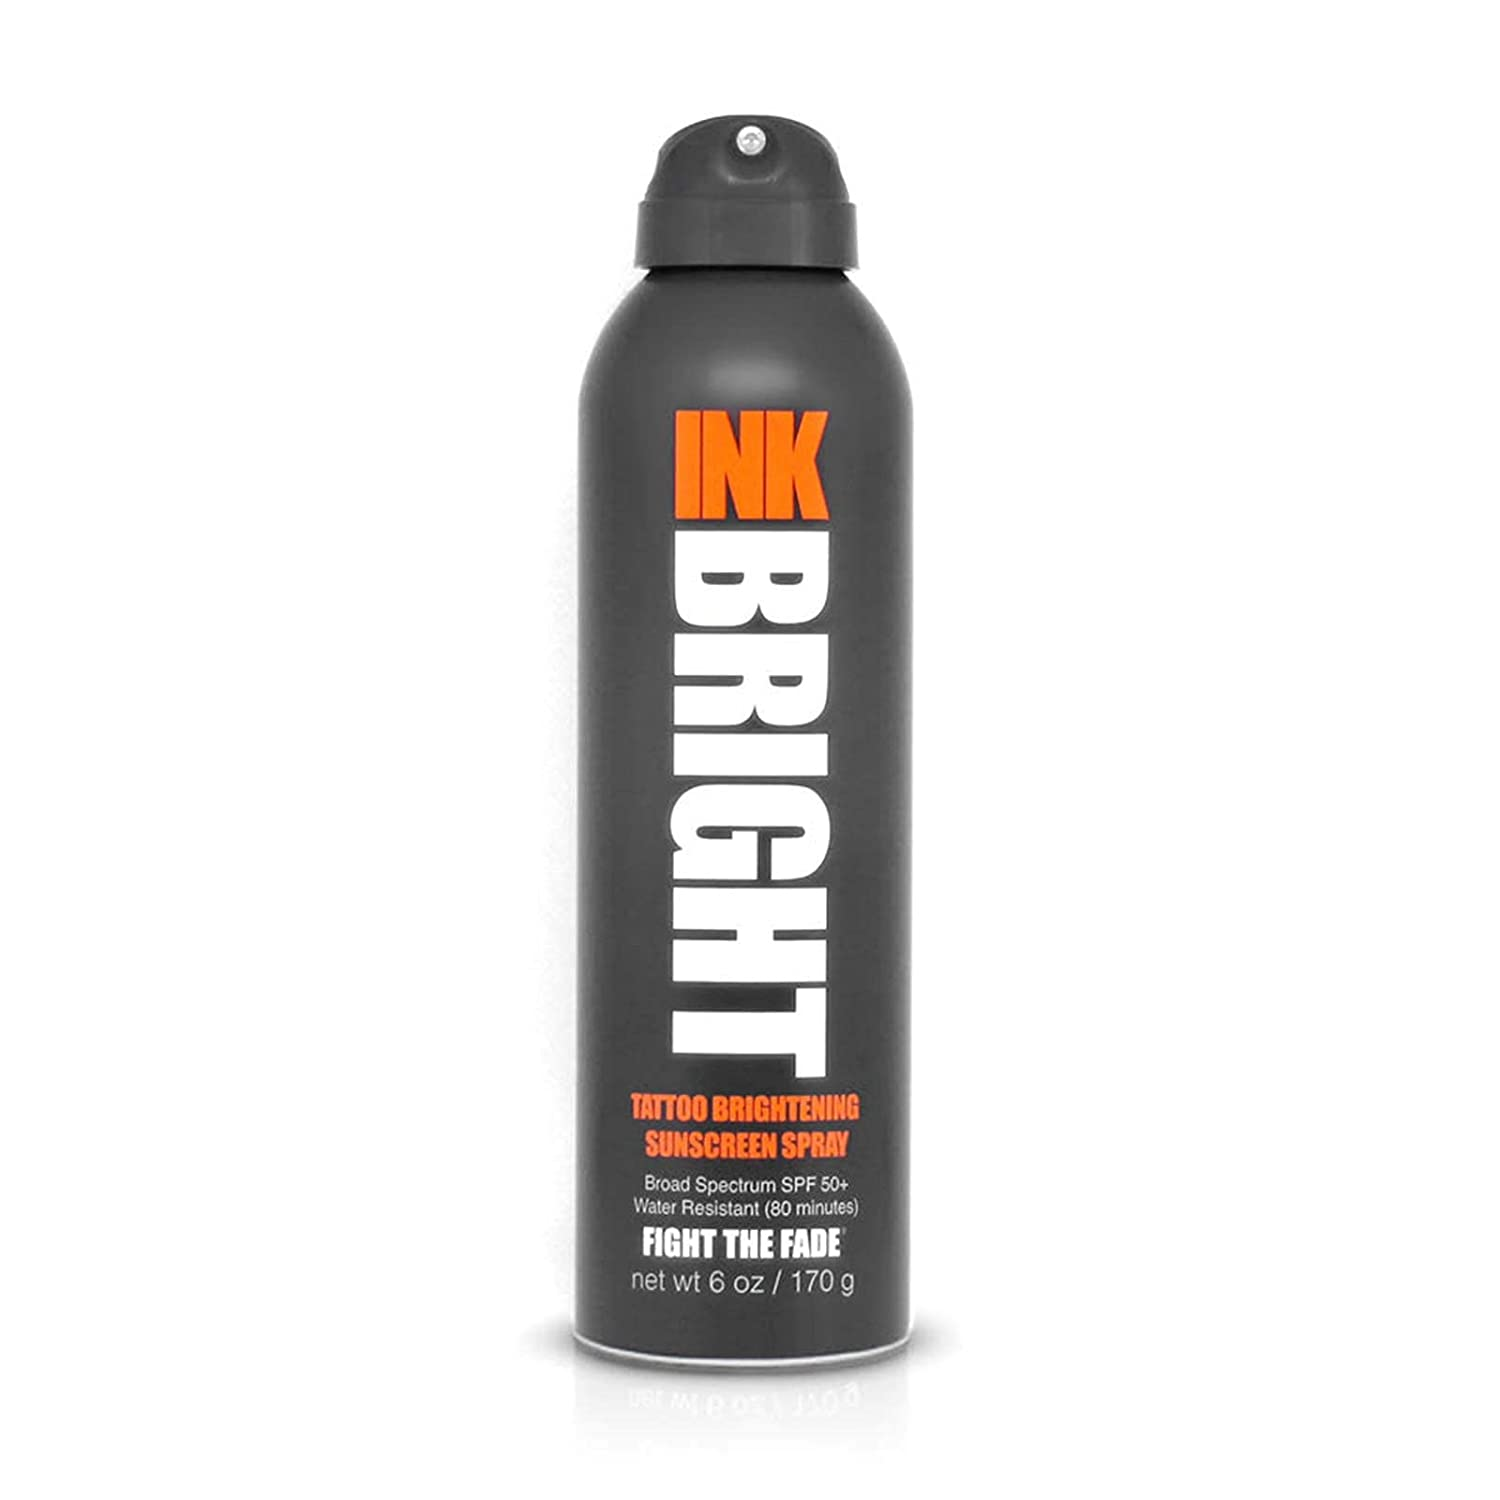 INK Tattoo Brightener Sunscreen Spray with SPF 50; best sunscreen for tattoos